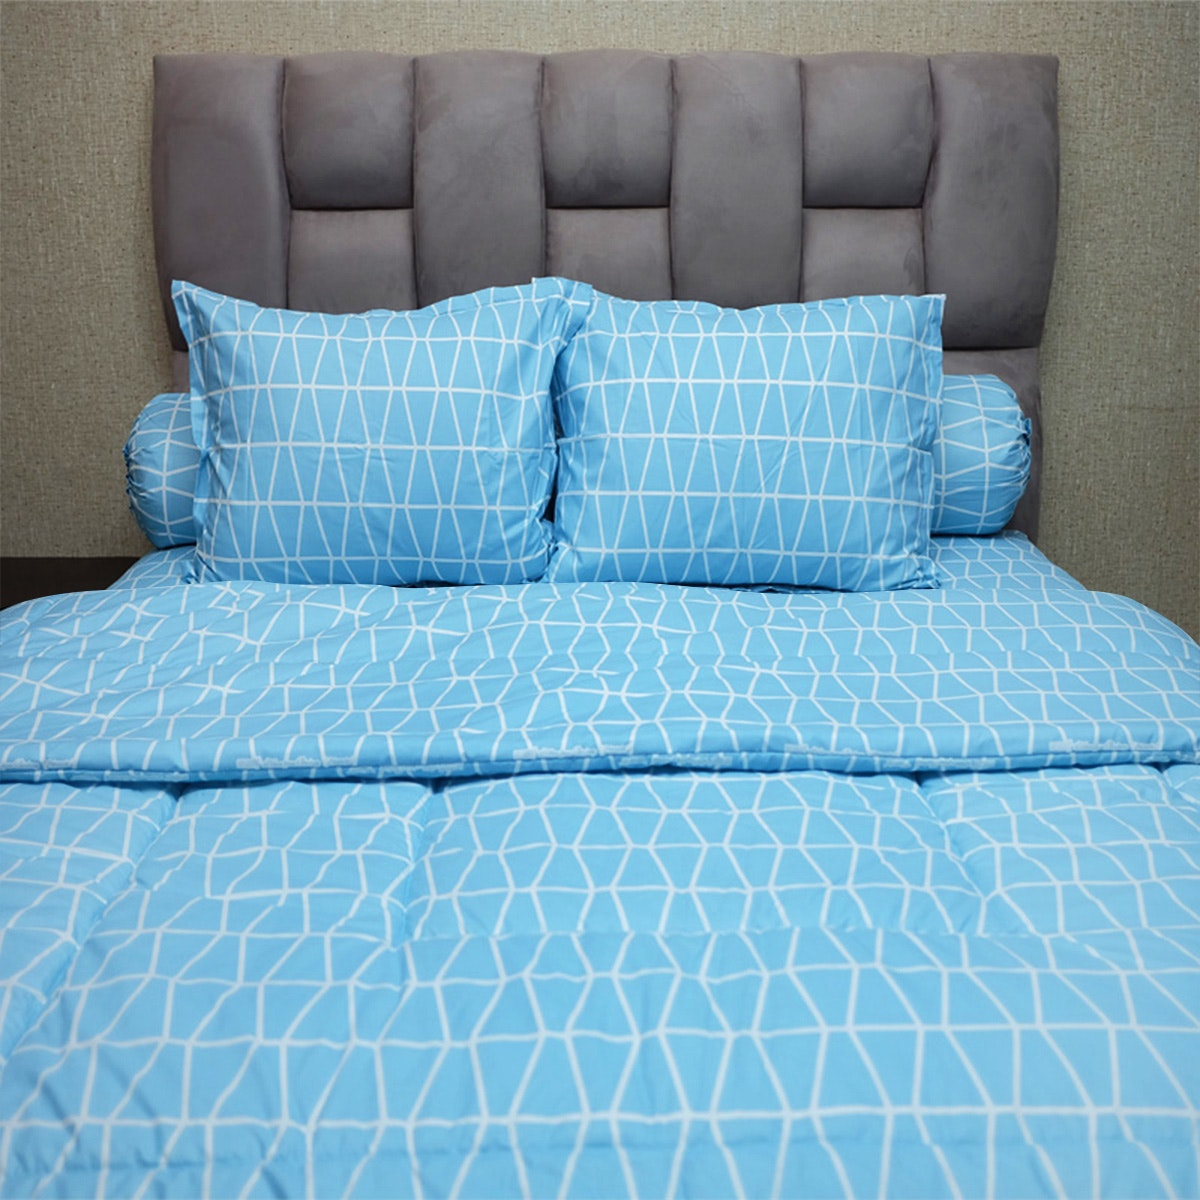 Sleep Buddy Set Sprei dan Bed Cover Prismatic Blue CVC 200x200x30